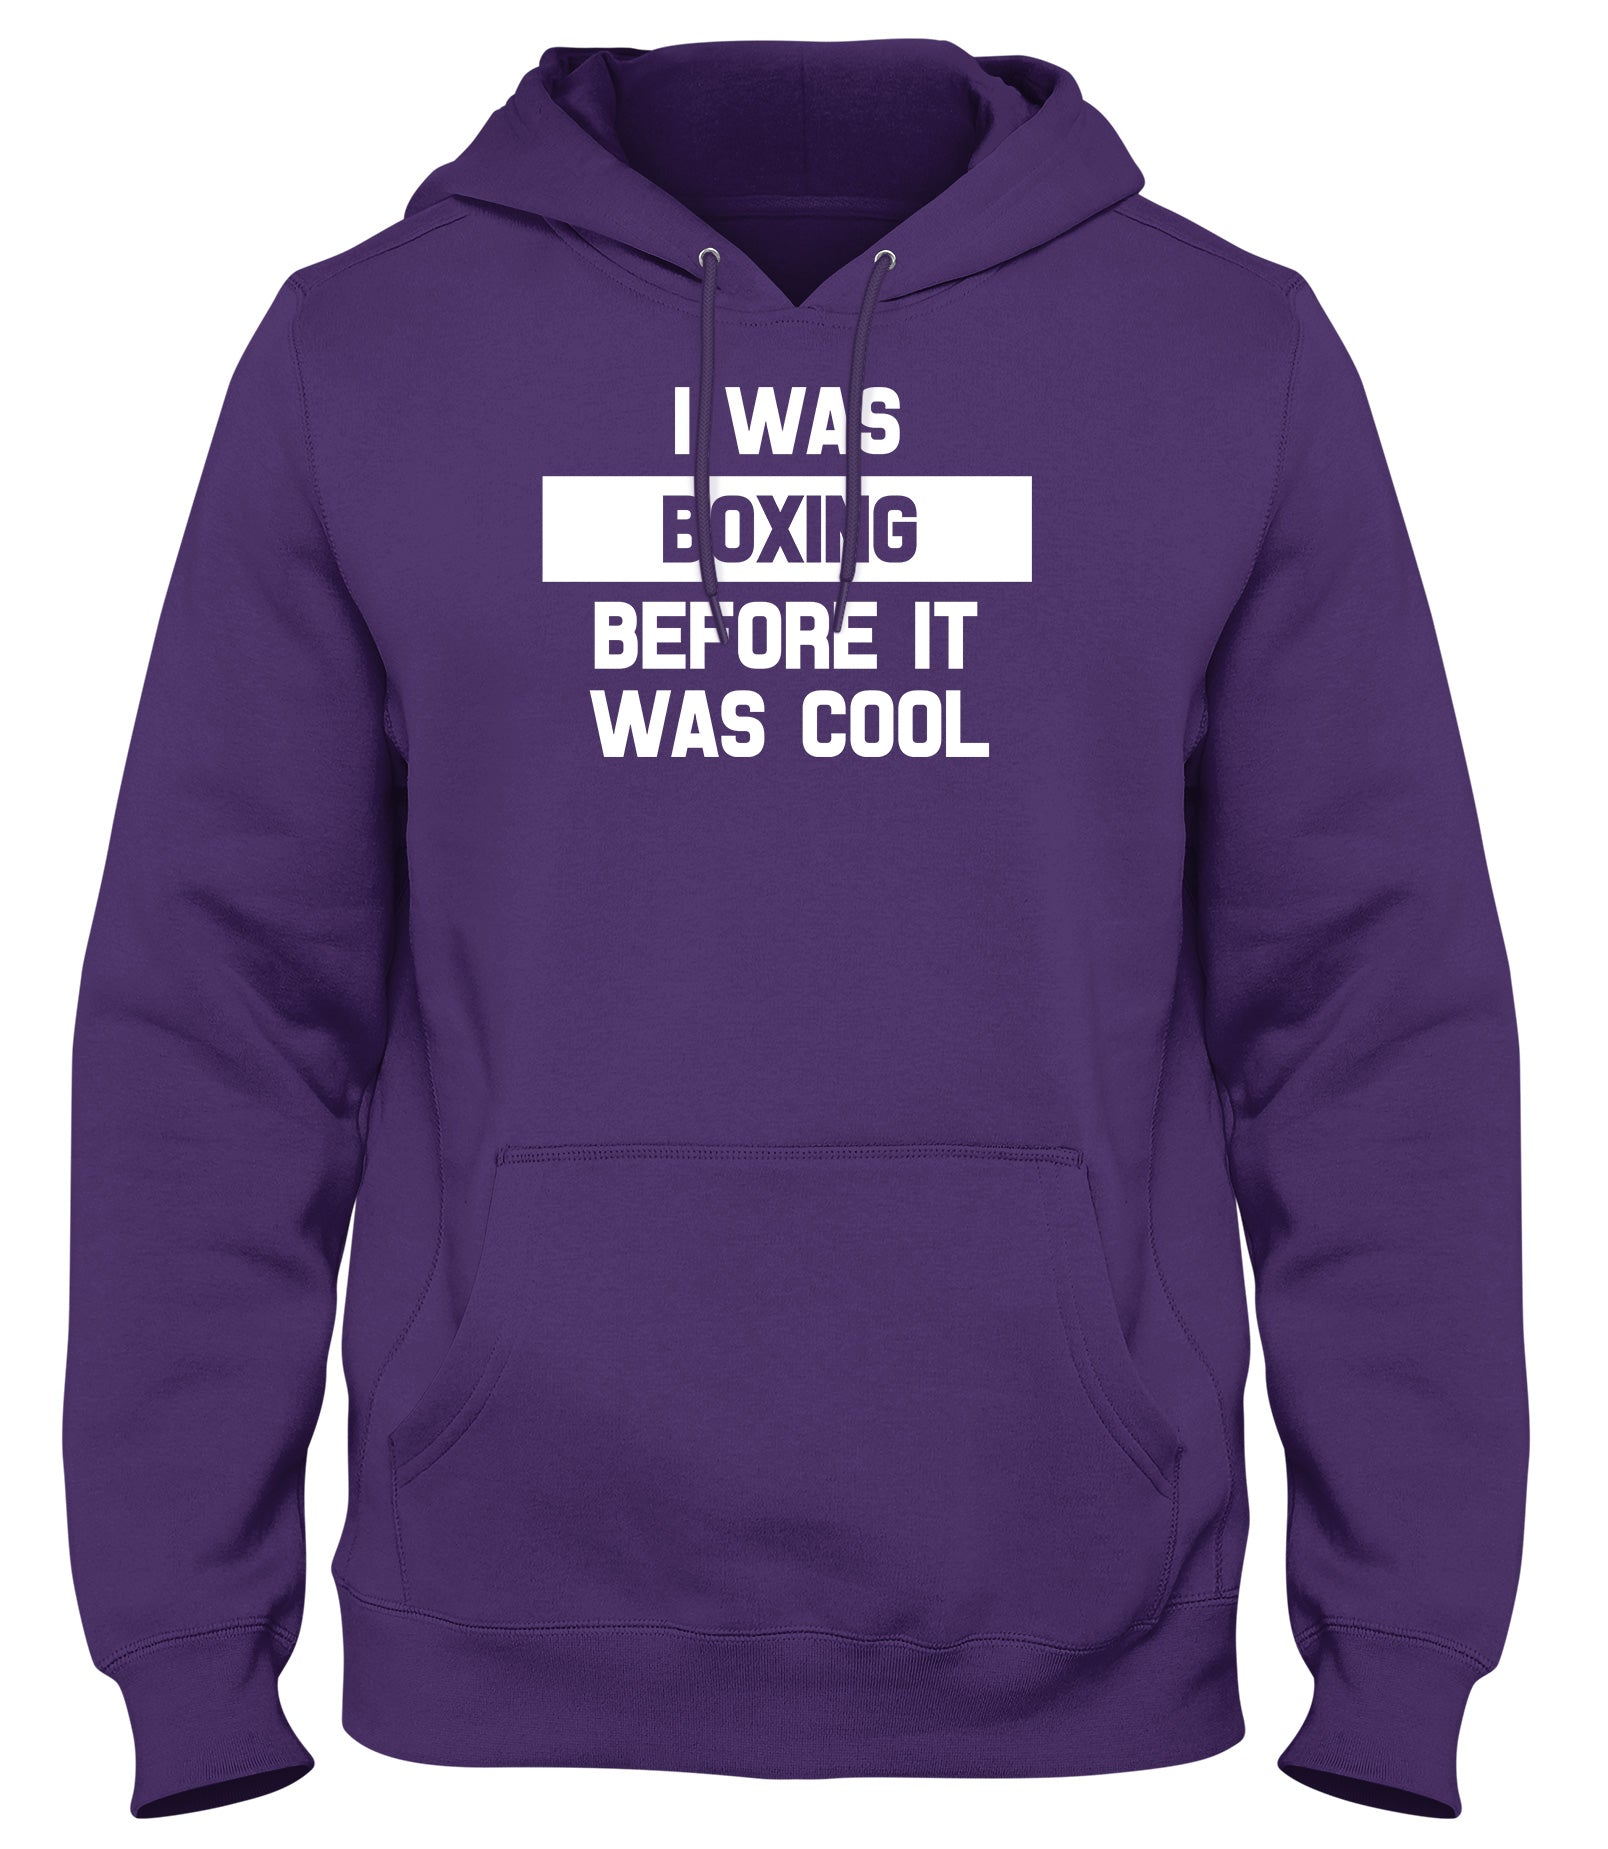 I WAS BOXING BEFORE IT WAS COOL WOMENS LADIES MENS UNISEX HOODIE